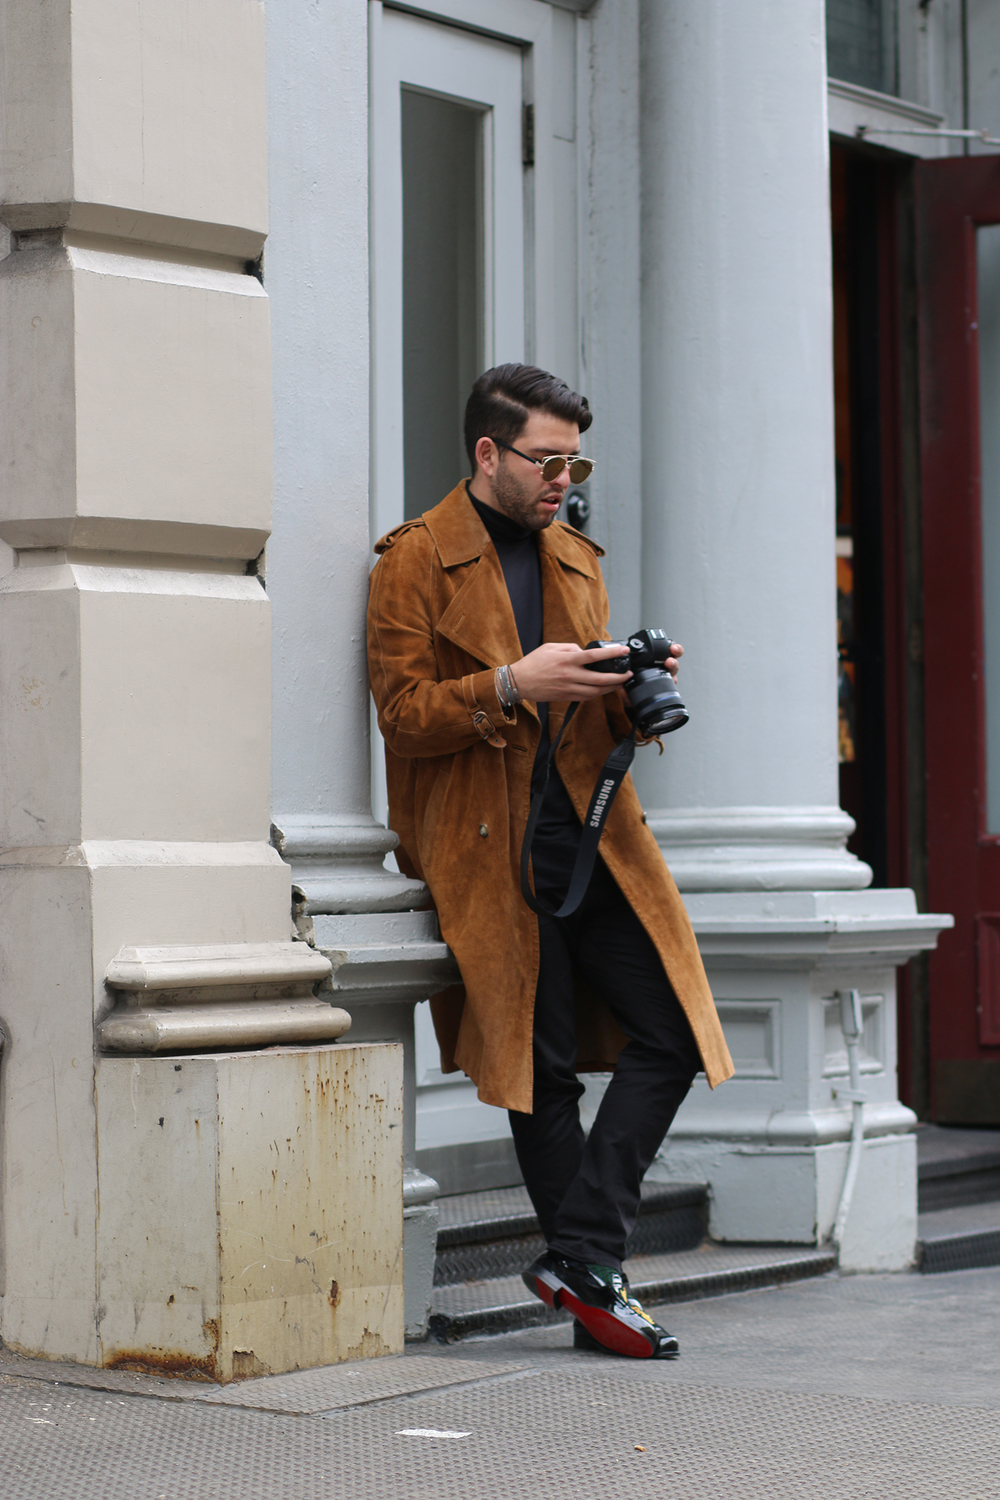 Vintage Gucci Coat/ Dior Sunglasses/ Christian Louboutin Loafers